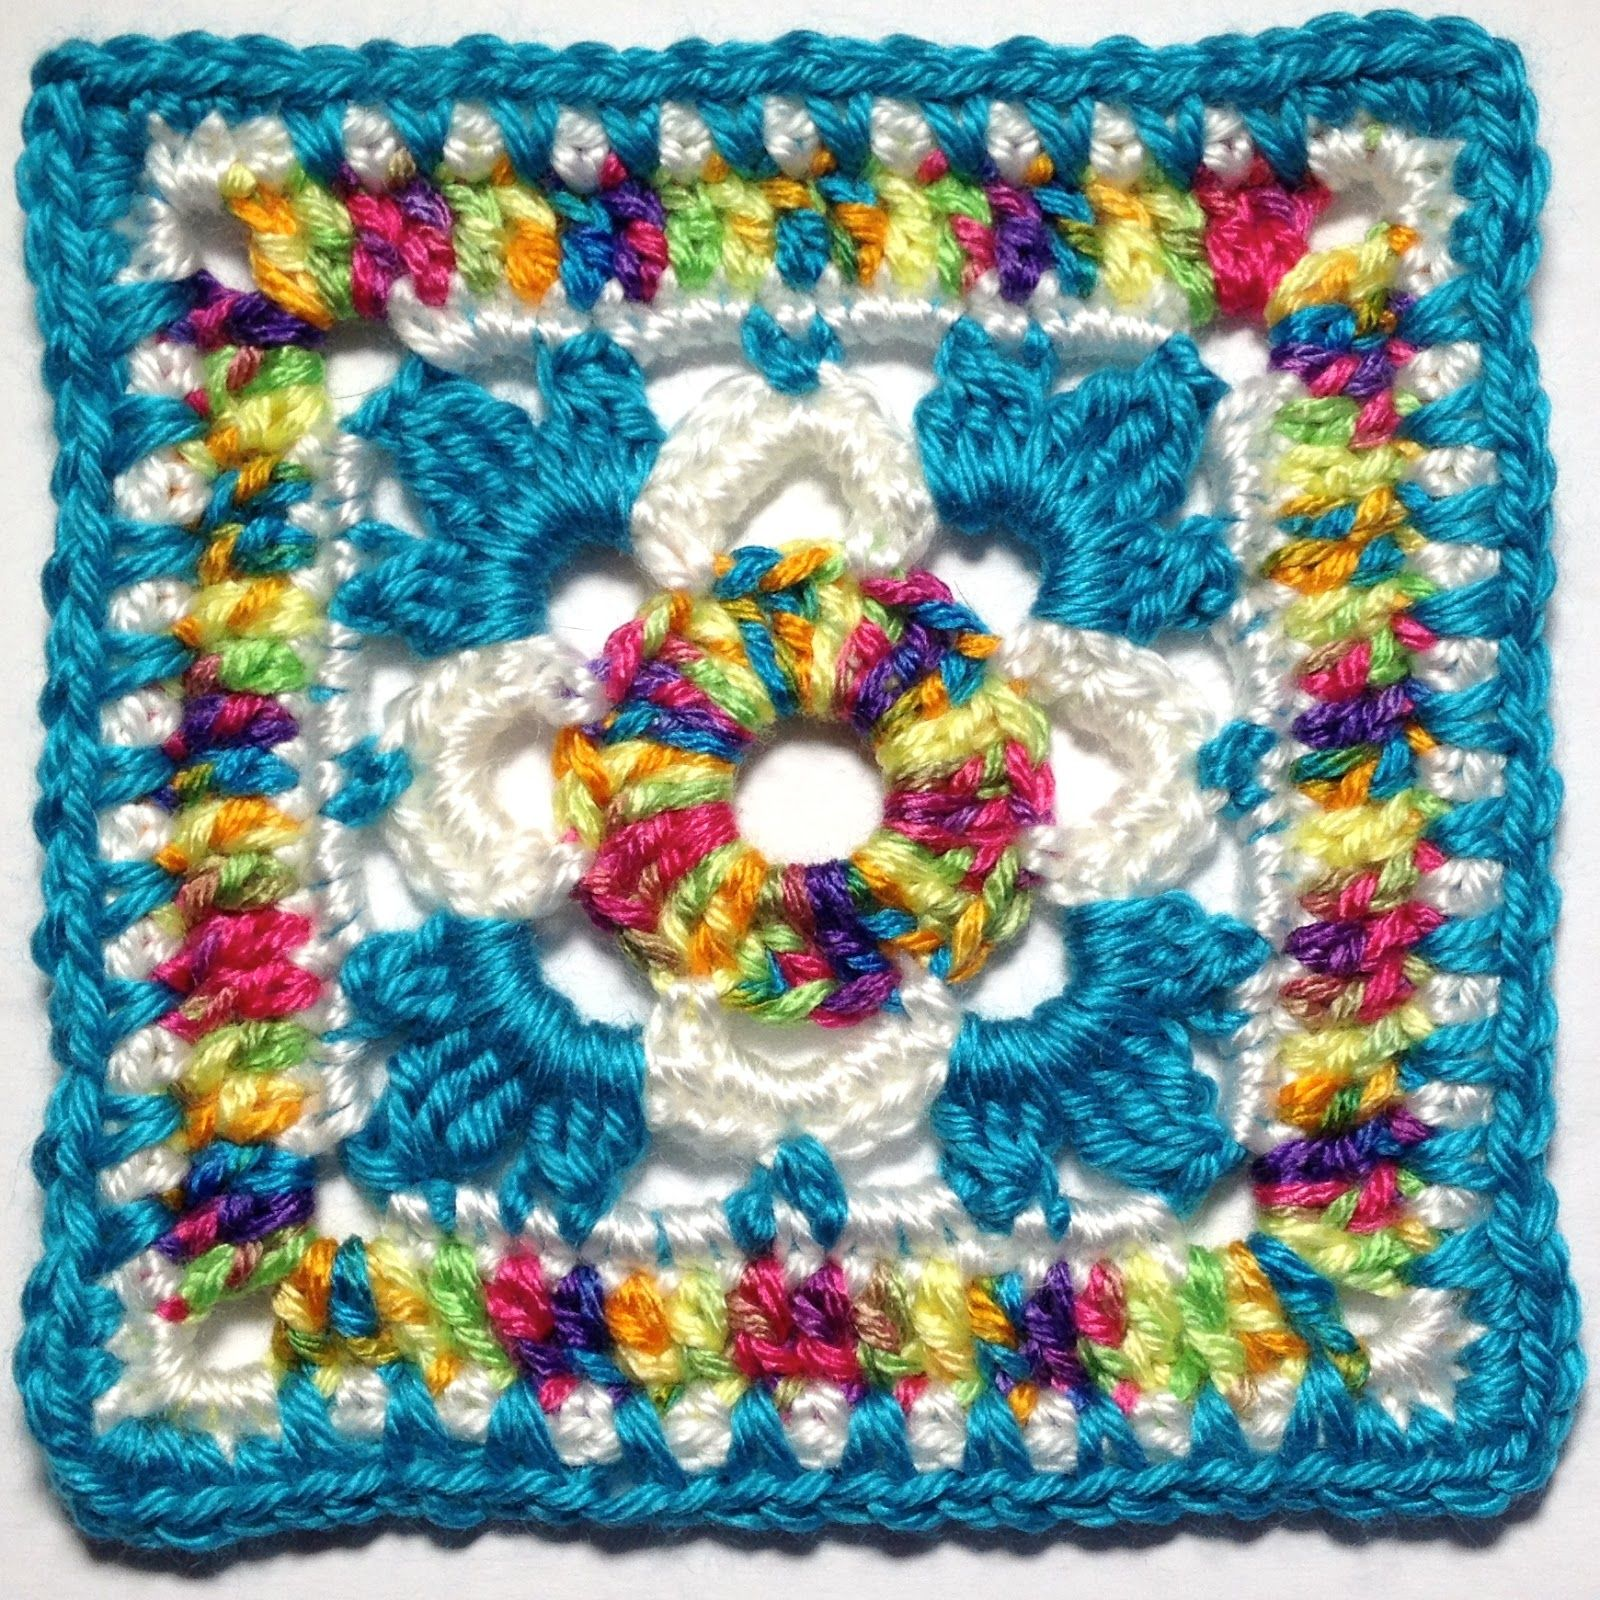 I AM...CRAFTY!: Hooked on Granny Squares - Free ( 365 ) \